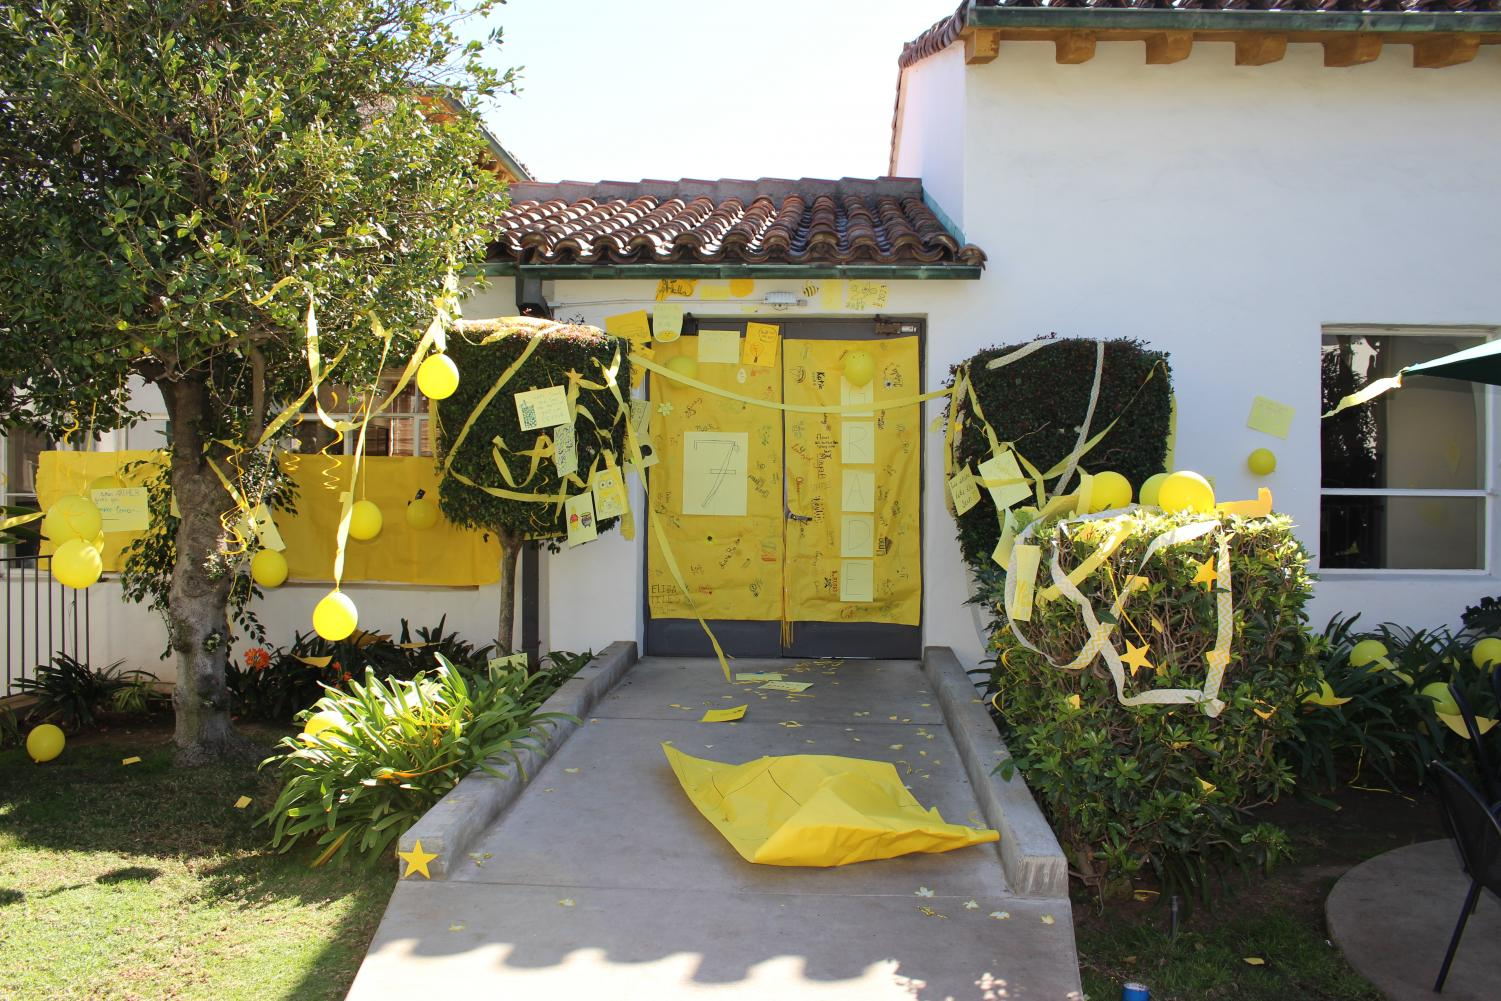 The+seventh+grade+class+had+the+color+yellow.+Their+door+consisted+of+yellow+balloons%2C+streamers+and+posters.